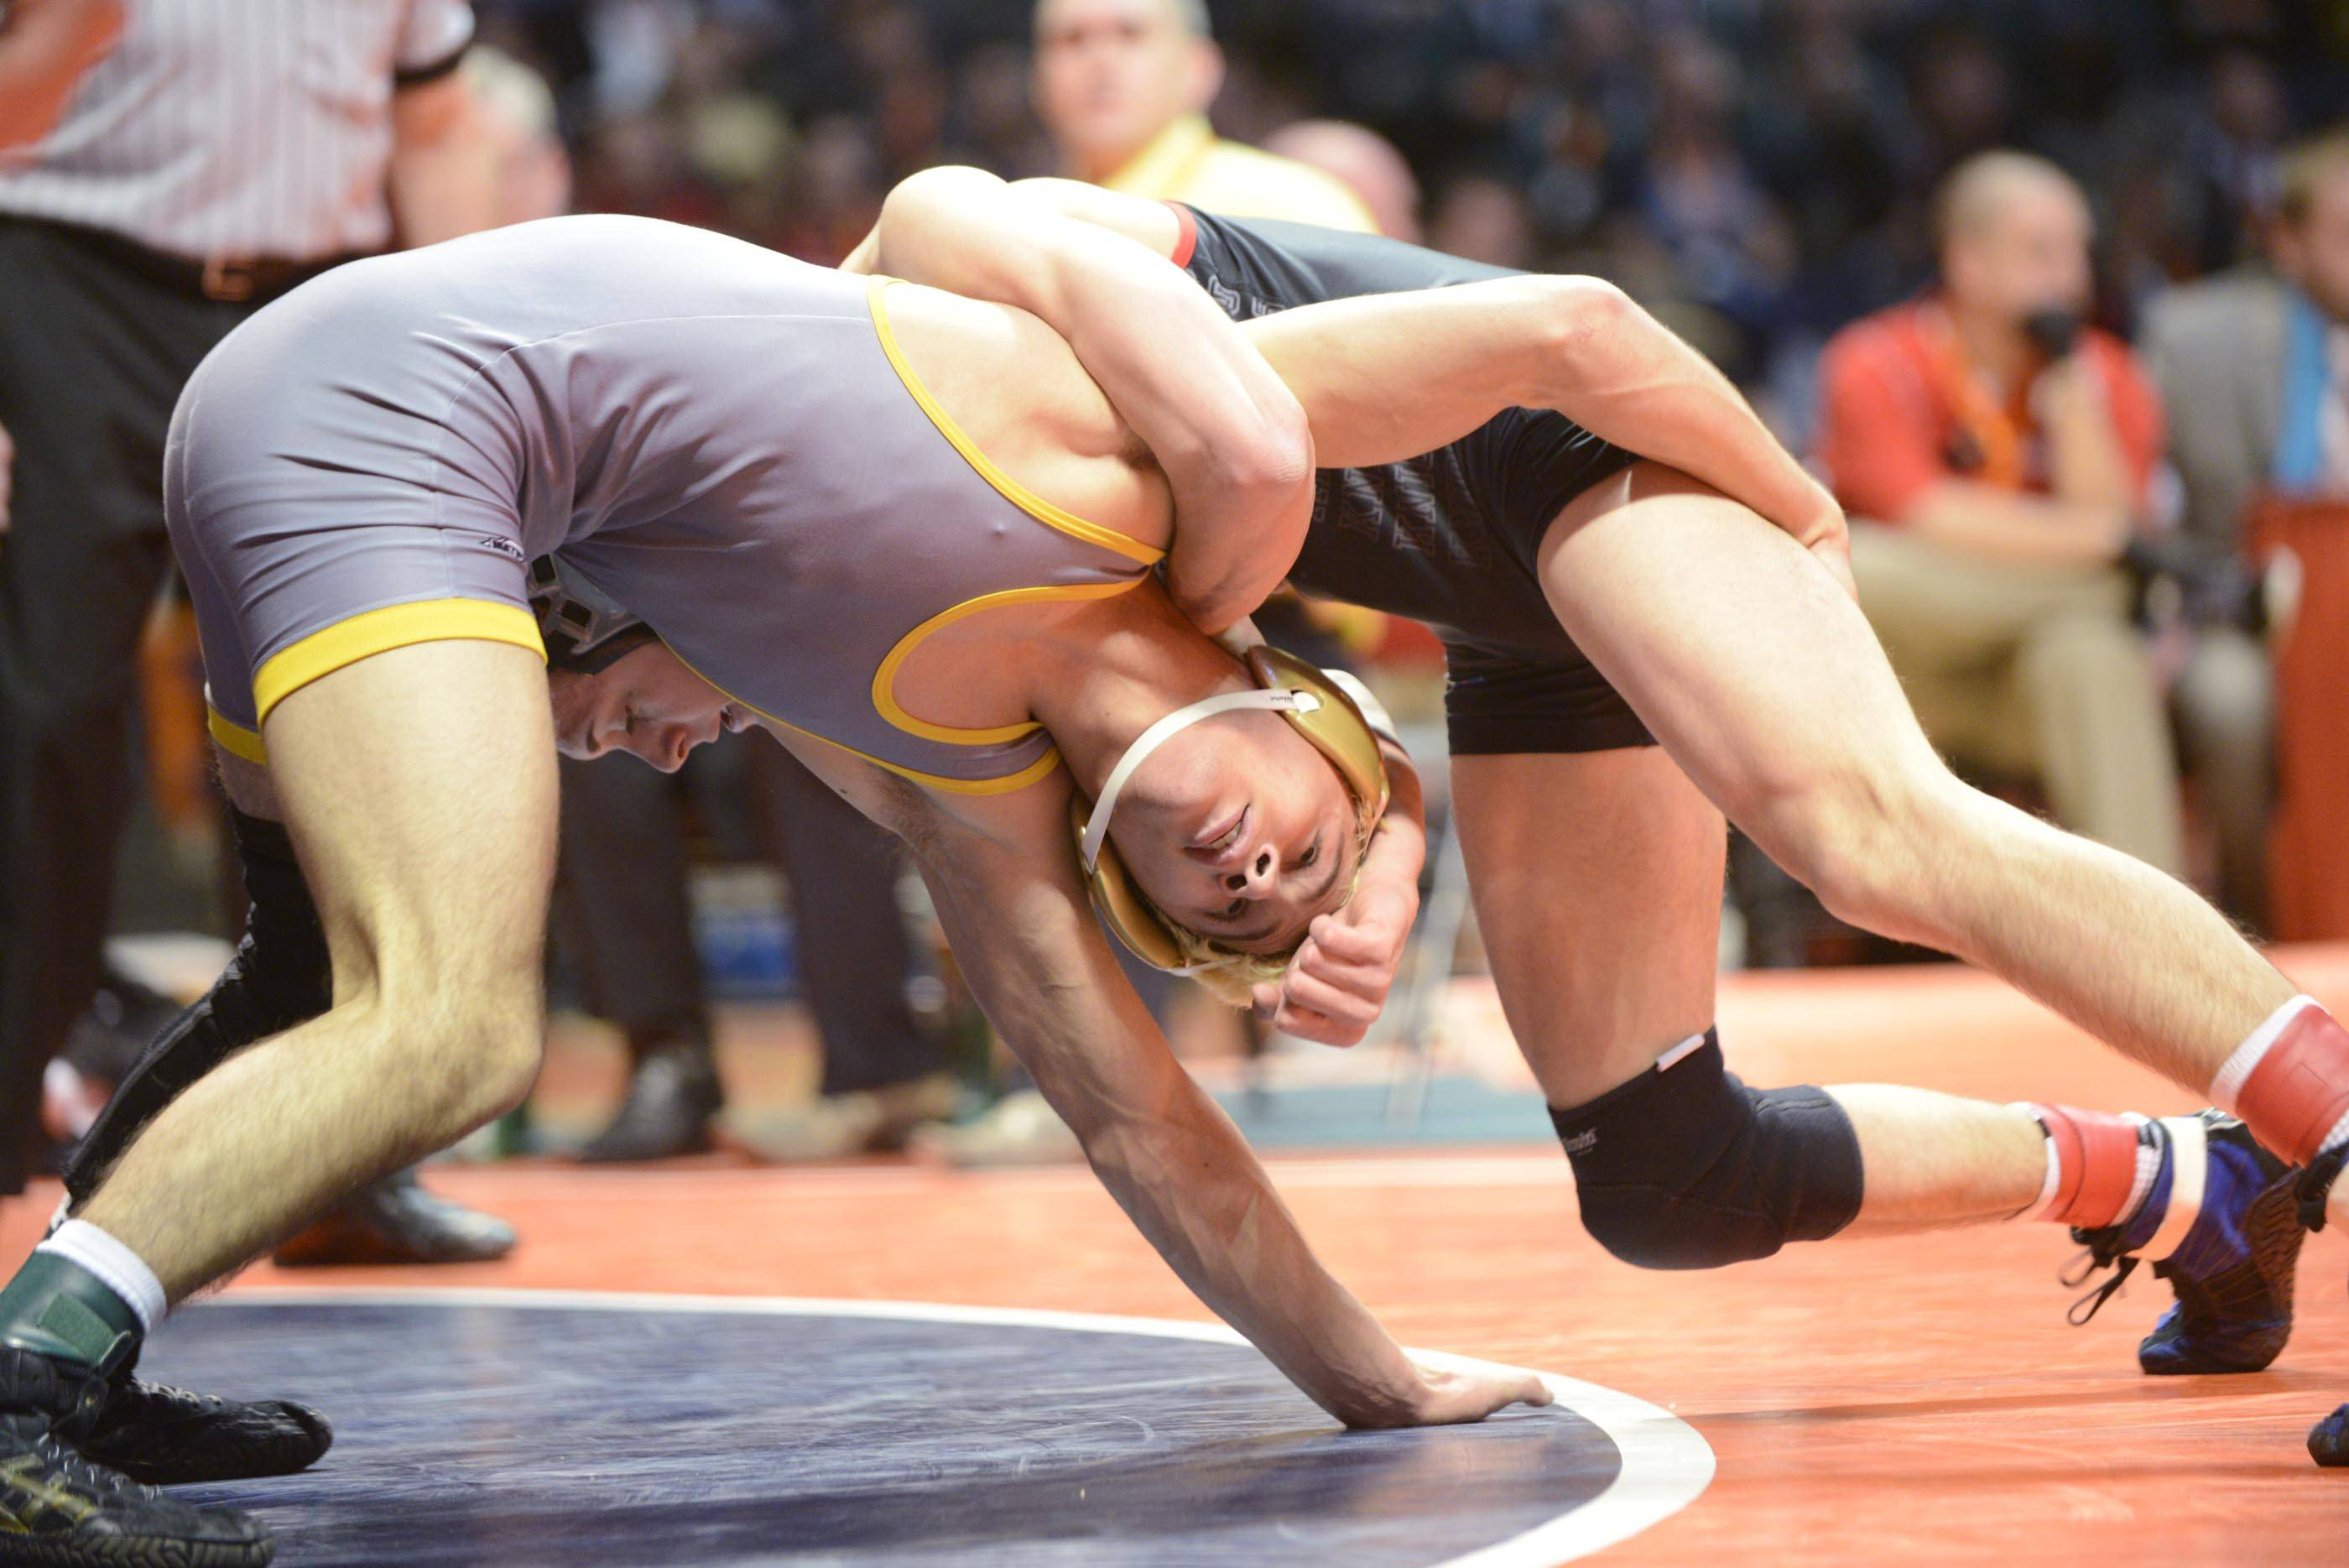 Jared Cortez of Glenbard North High School competes against Joey Nelson of Lincoln-Way Central High School Saturday in the 132-pound weight class championship match of the wrestling IHSA Class 3A state tournament at State Farm Center in Champaign.